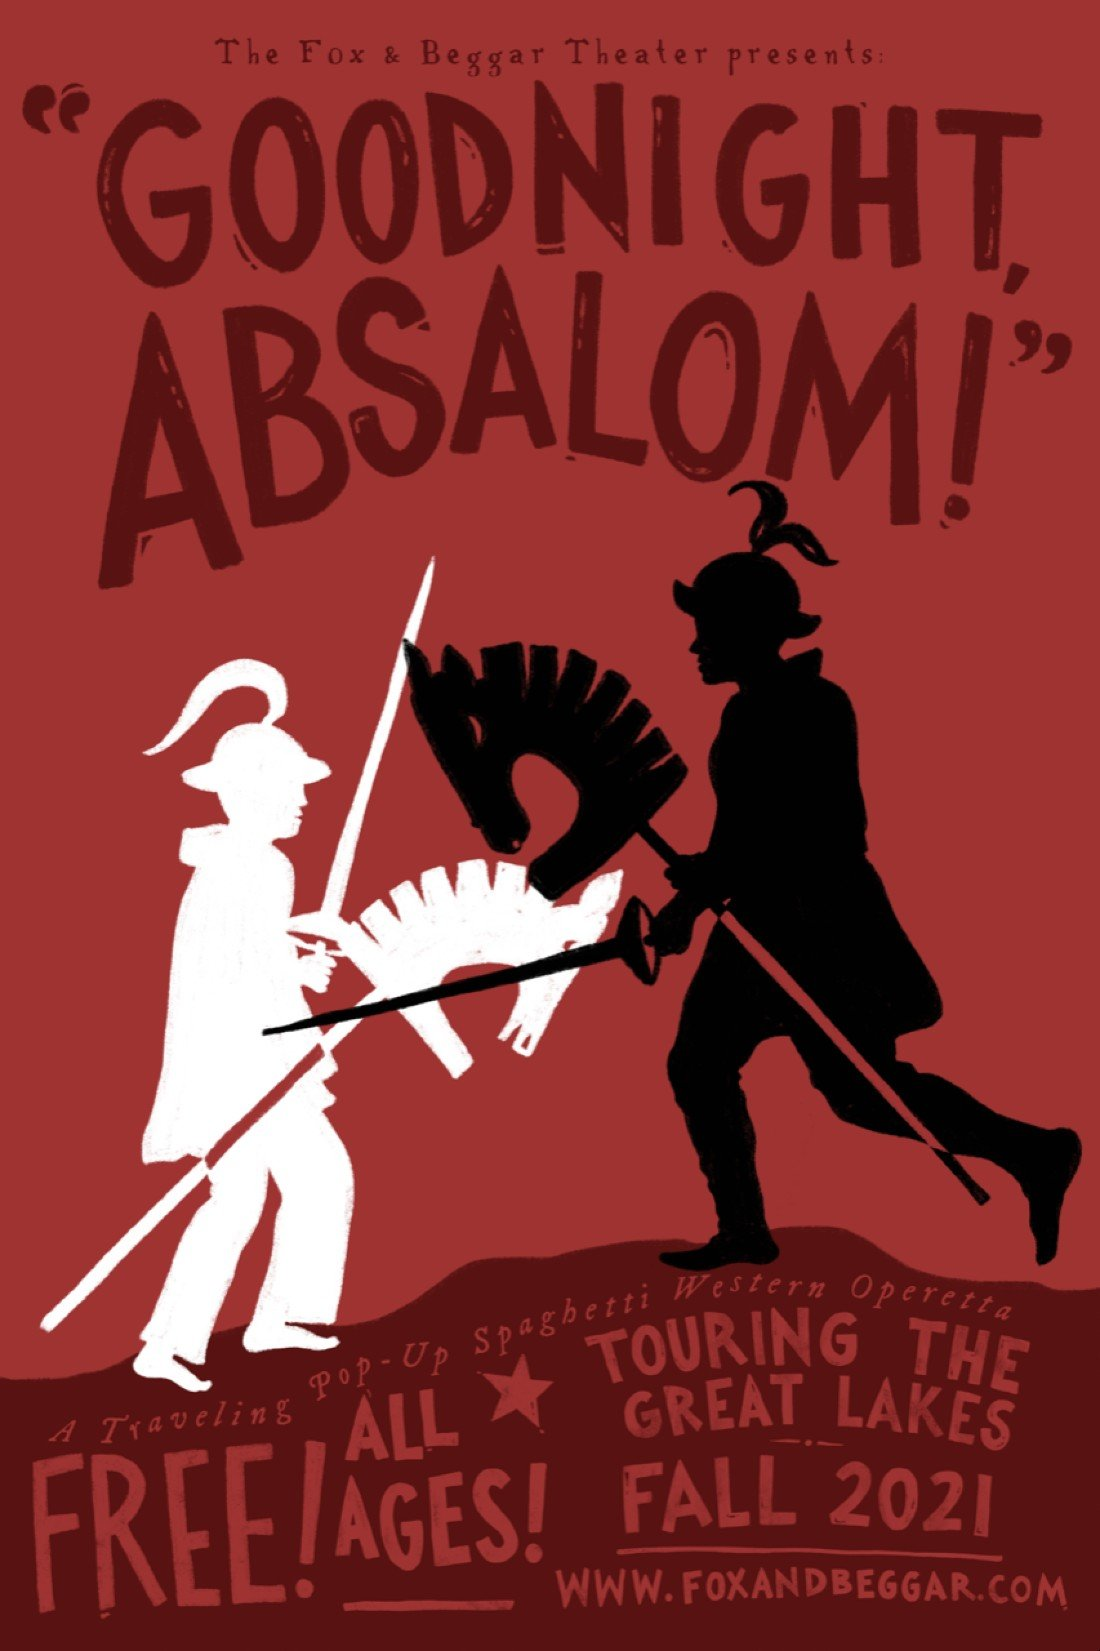 The Fox and Beggar Theater Presents: Goodnight, Absalom!